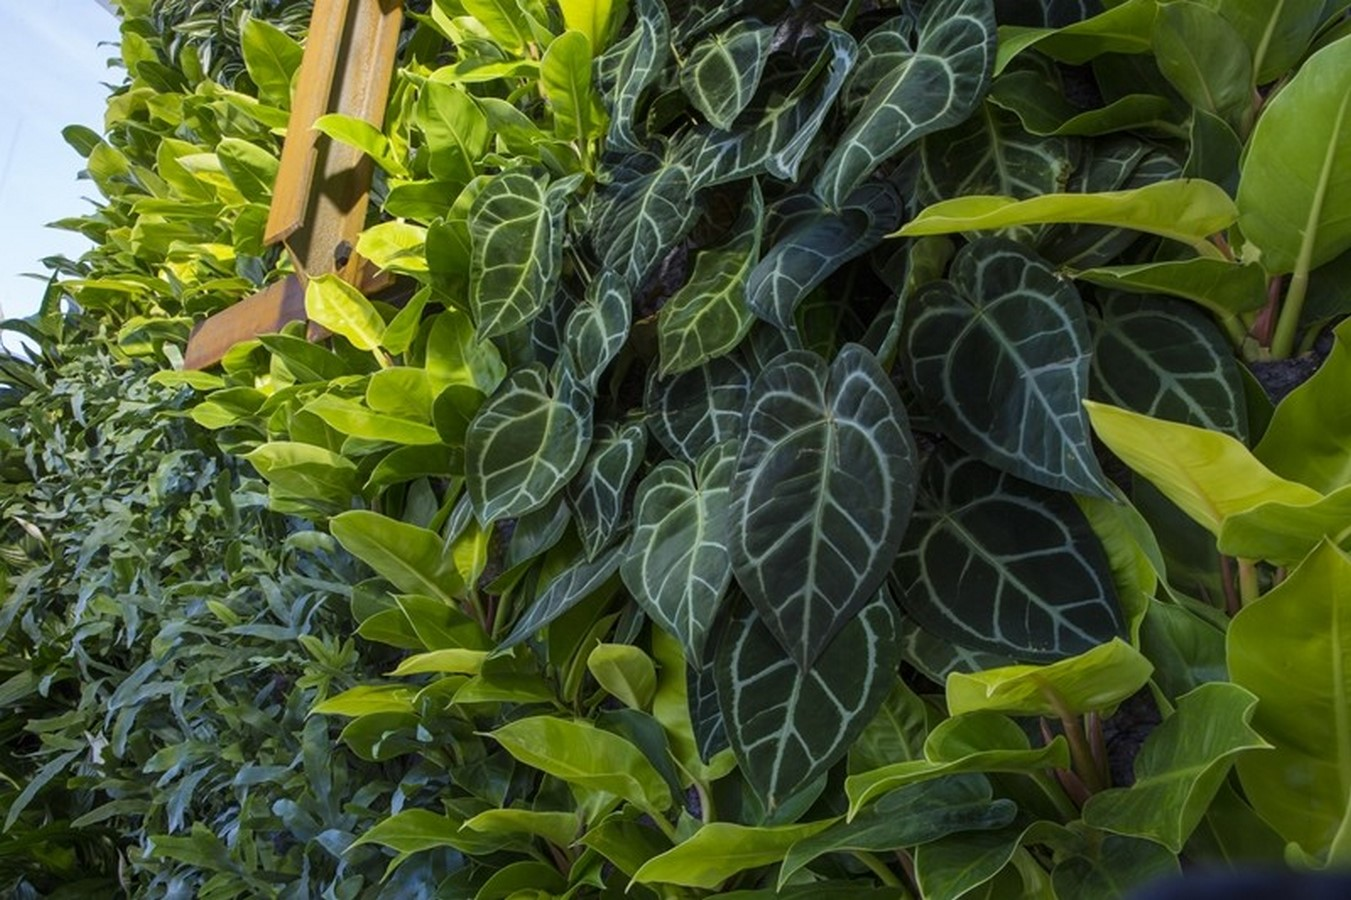 10 things you did not know about Green walls - Sheet22